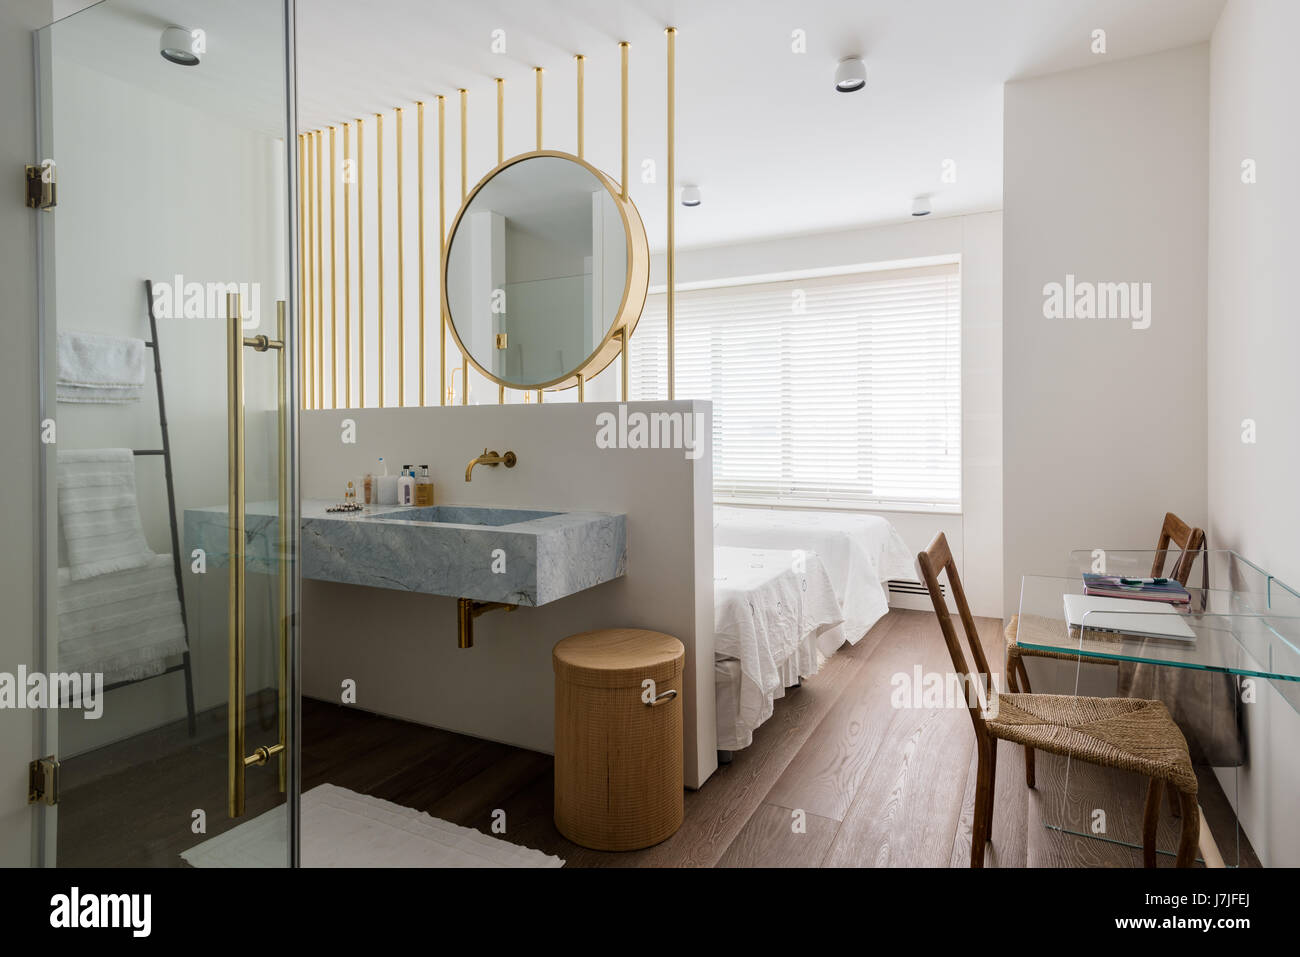 Large brass mirror above ensuite wash stand in twin bedroom - Stock Image